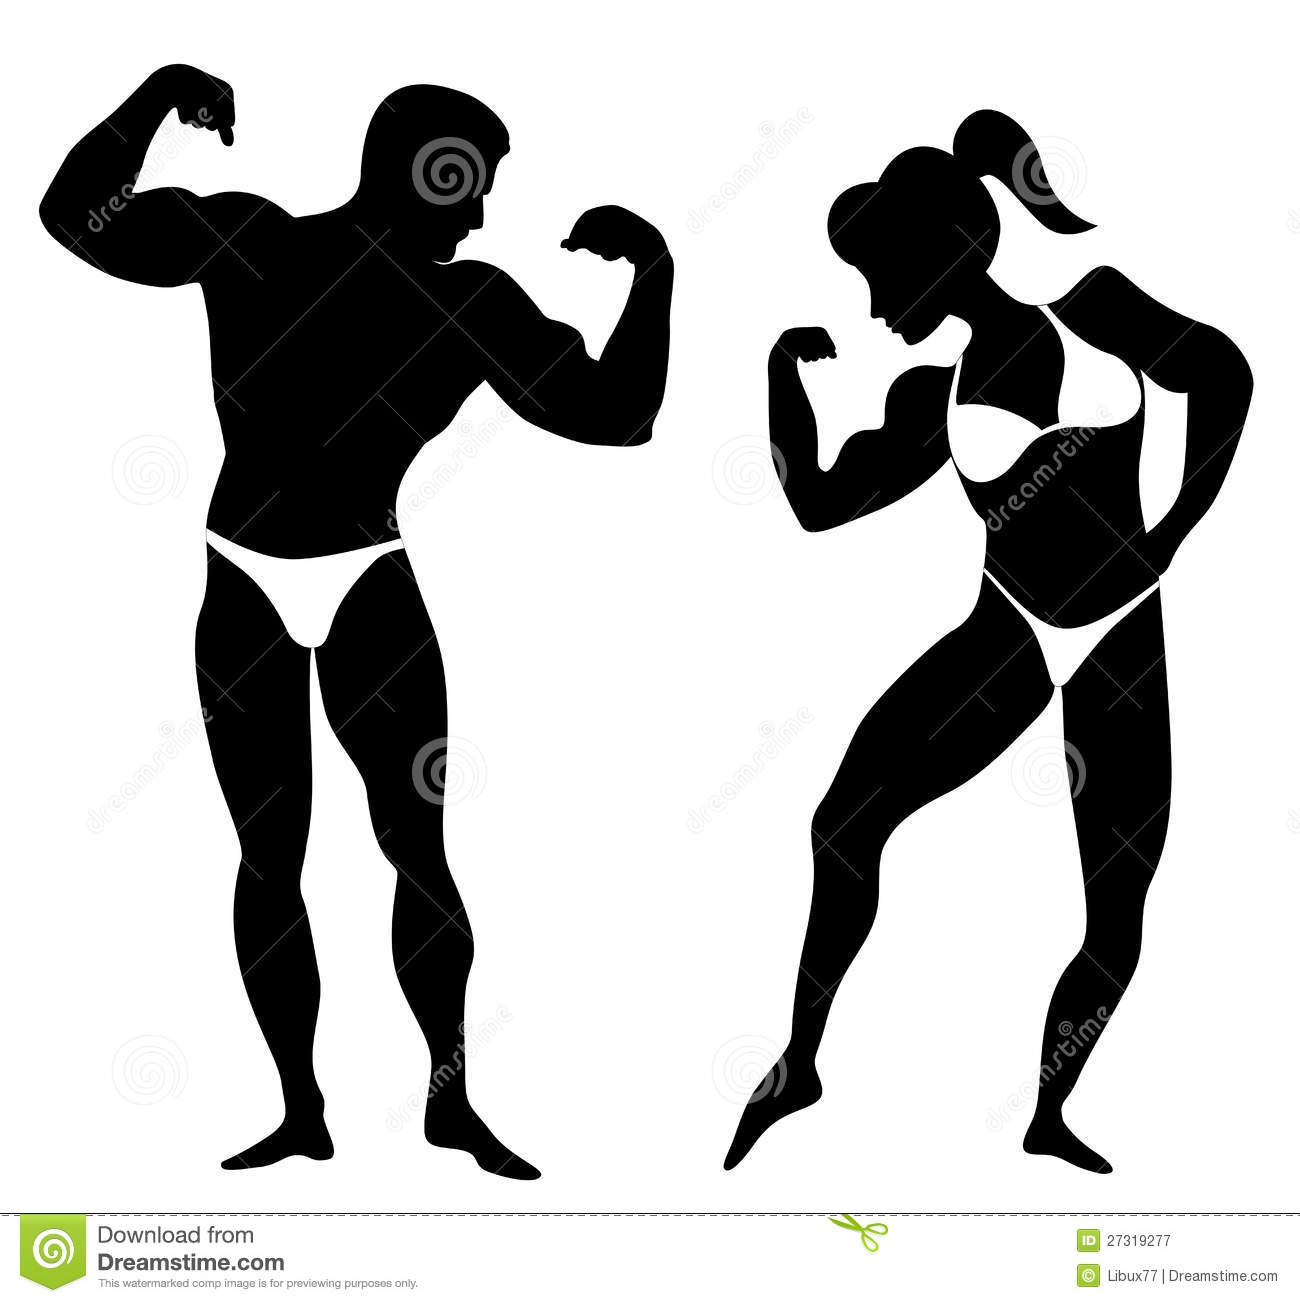 Silhouette Of Body Builders Stock Vector - Illustration of